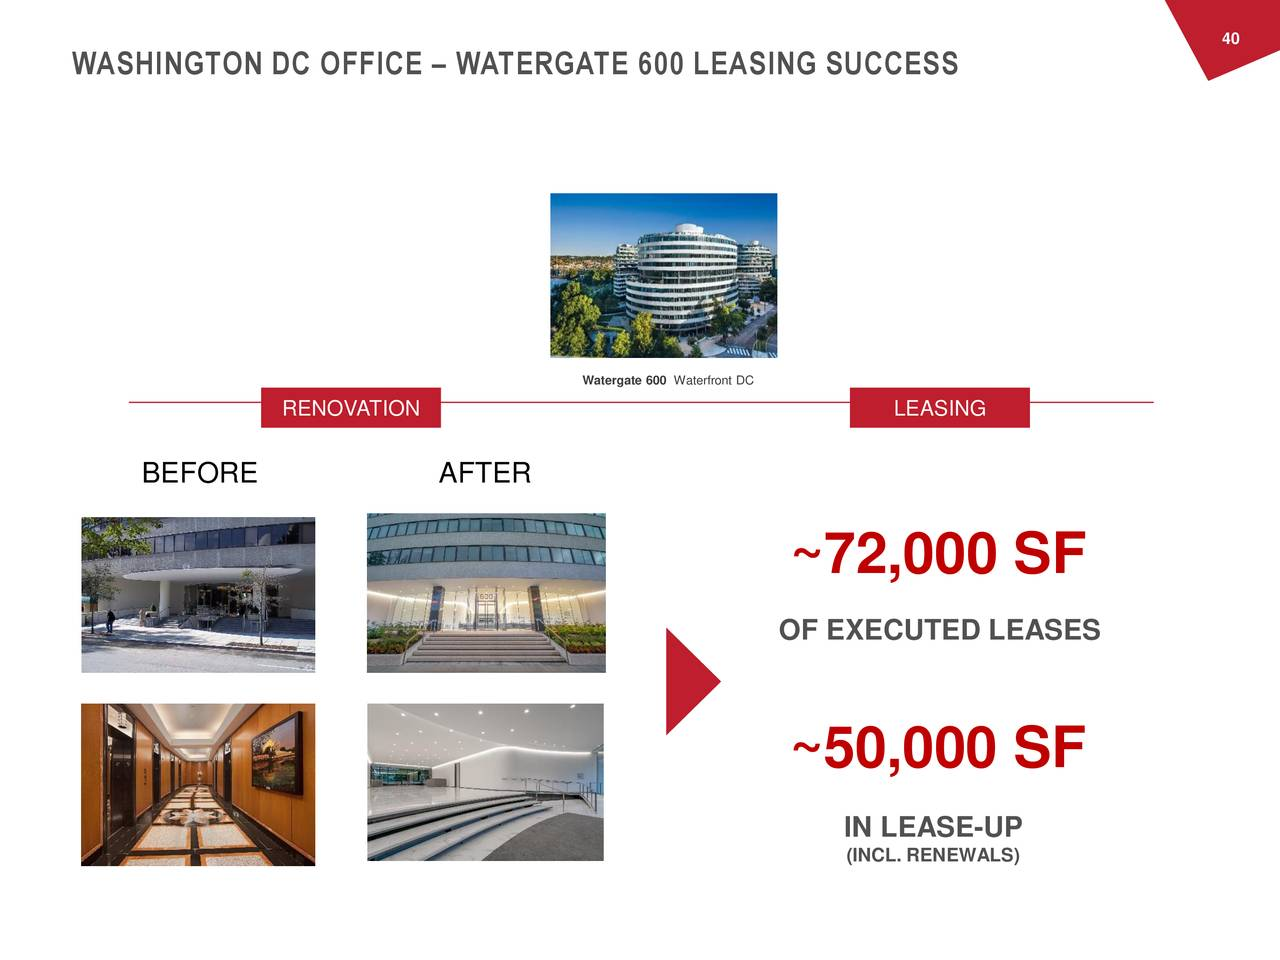 WASHINGTON DC OFFICE – WATERGATE 600 LEASING SUCCESS Watergate 600 Waterfront DC RENOVATION LEASING BEFORE AFTER ~72,000 SF OF EXECUTED LEASES ~50,000 SF IN LEASE-UP (INCL. RENEWALS)